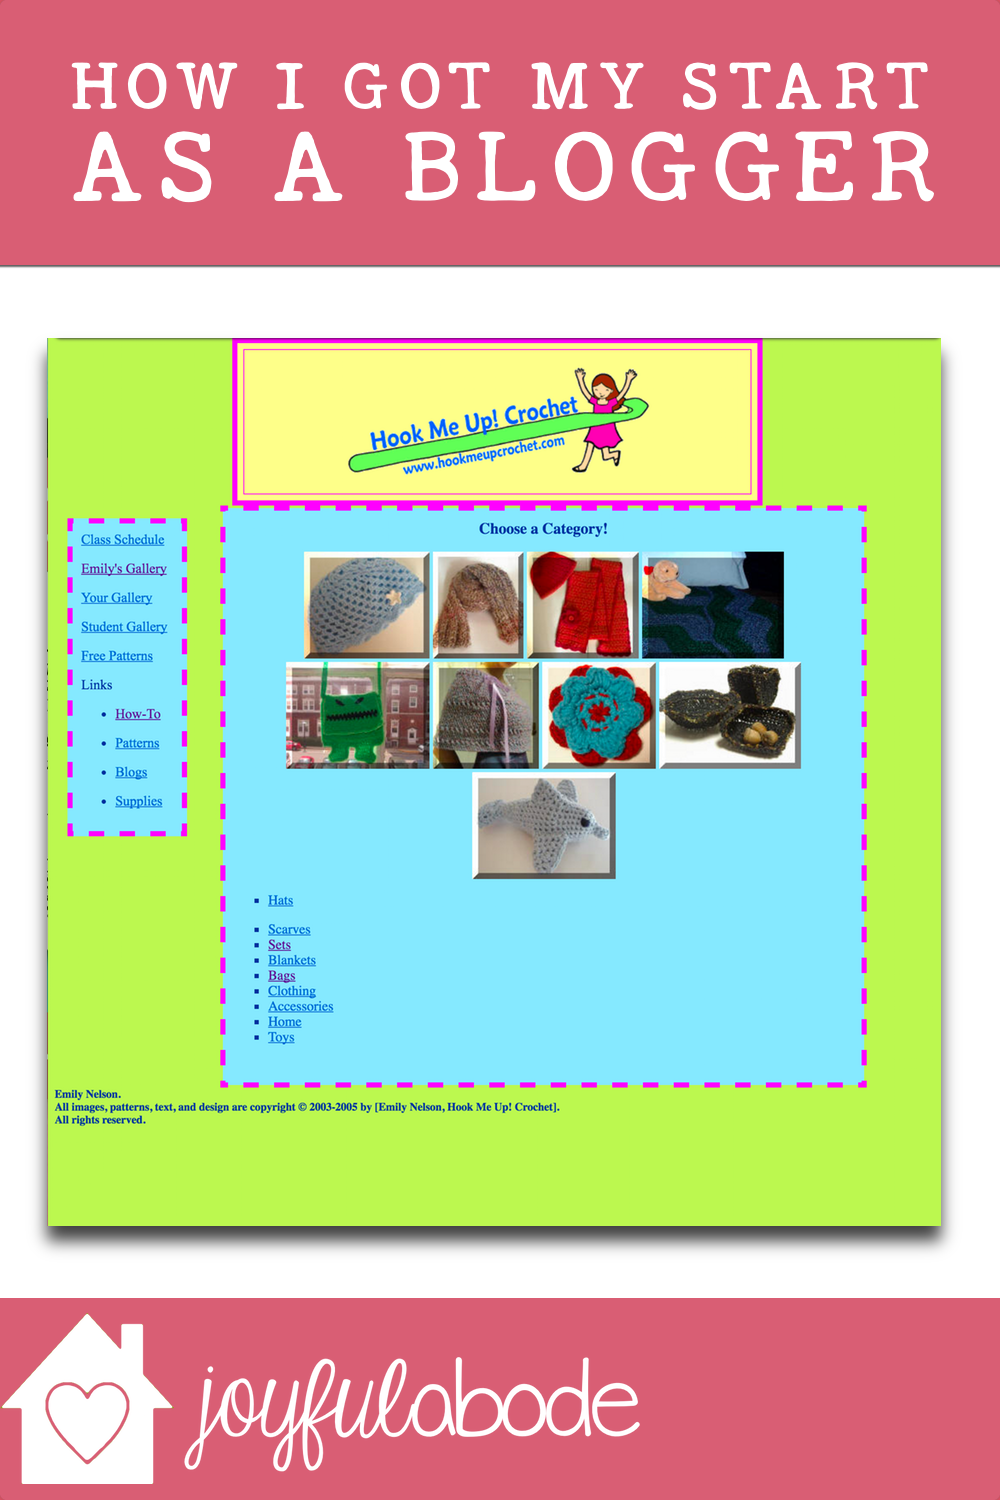 flashback to my very first website of my own - hook me up! crochet. It was my first taste of having a place of my own on the internet, and I've never looked back!